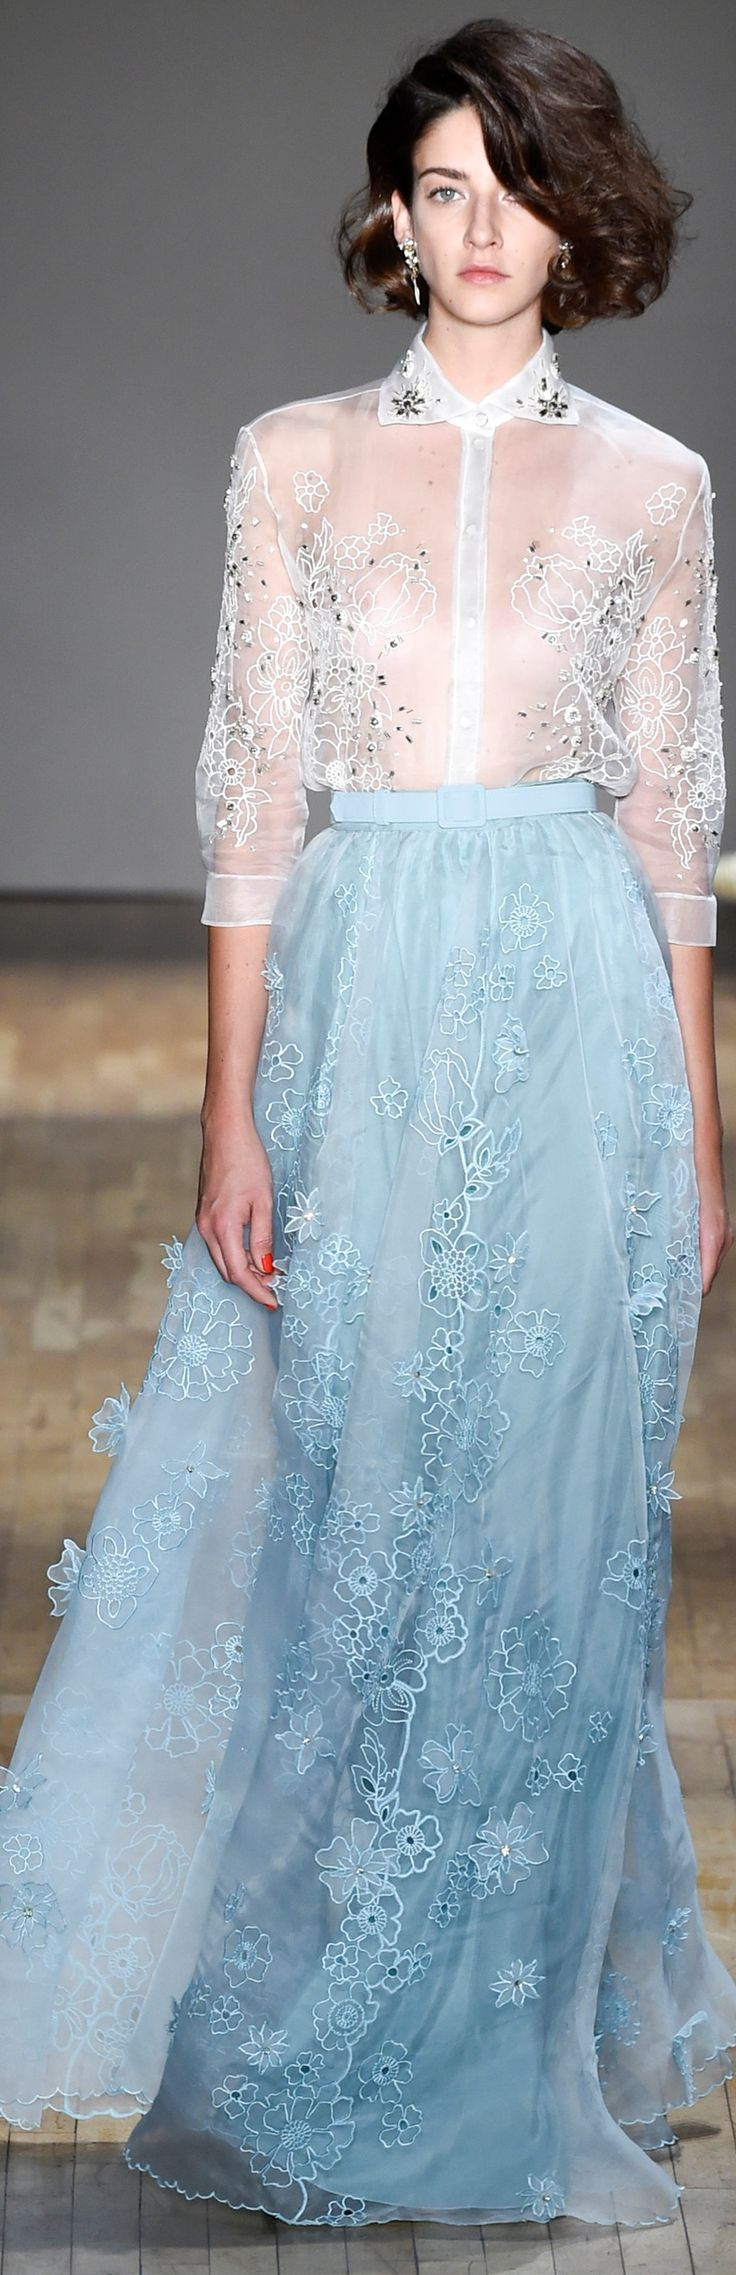 128 best Fashion: Jenny Packham images on Pinterest | Jenny packham ...